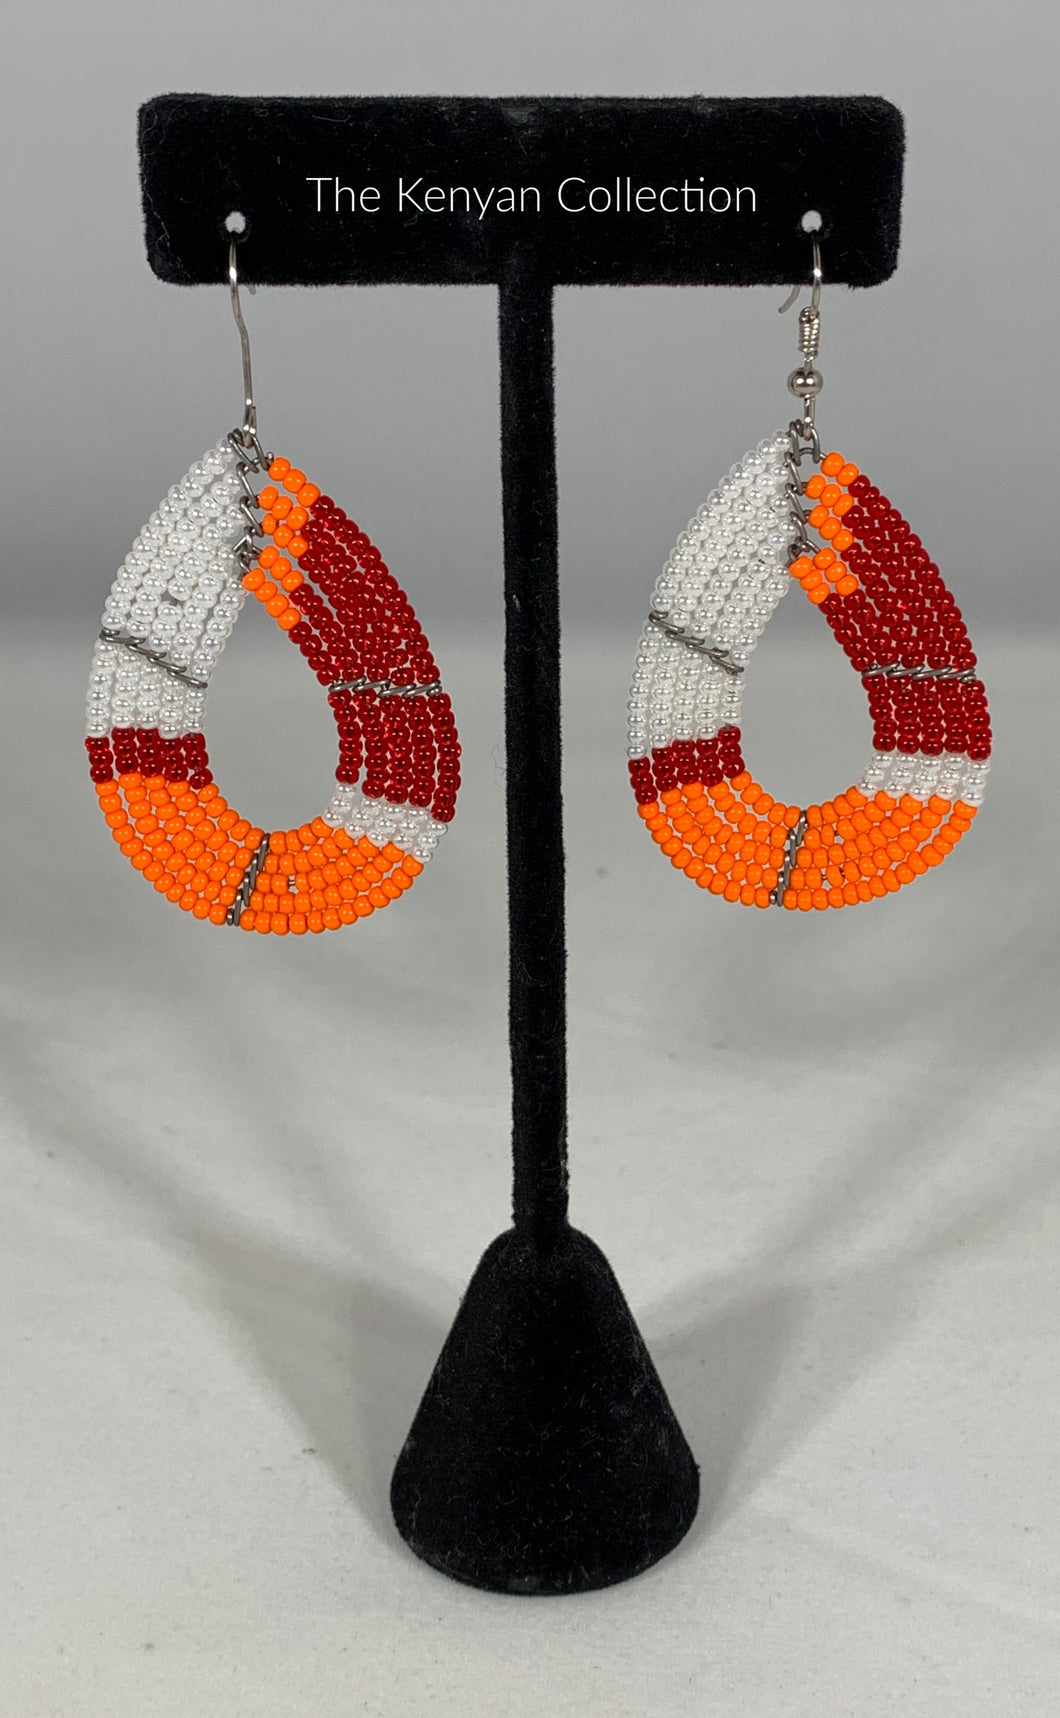 Earrings in Peacock Orange and Reds